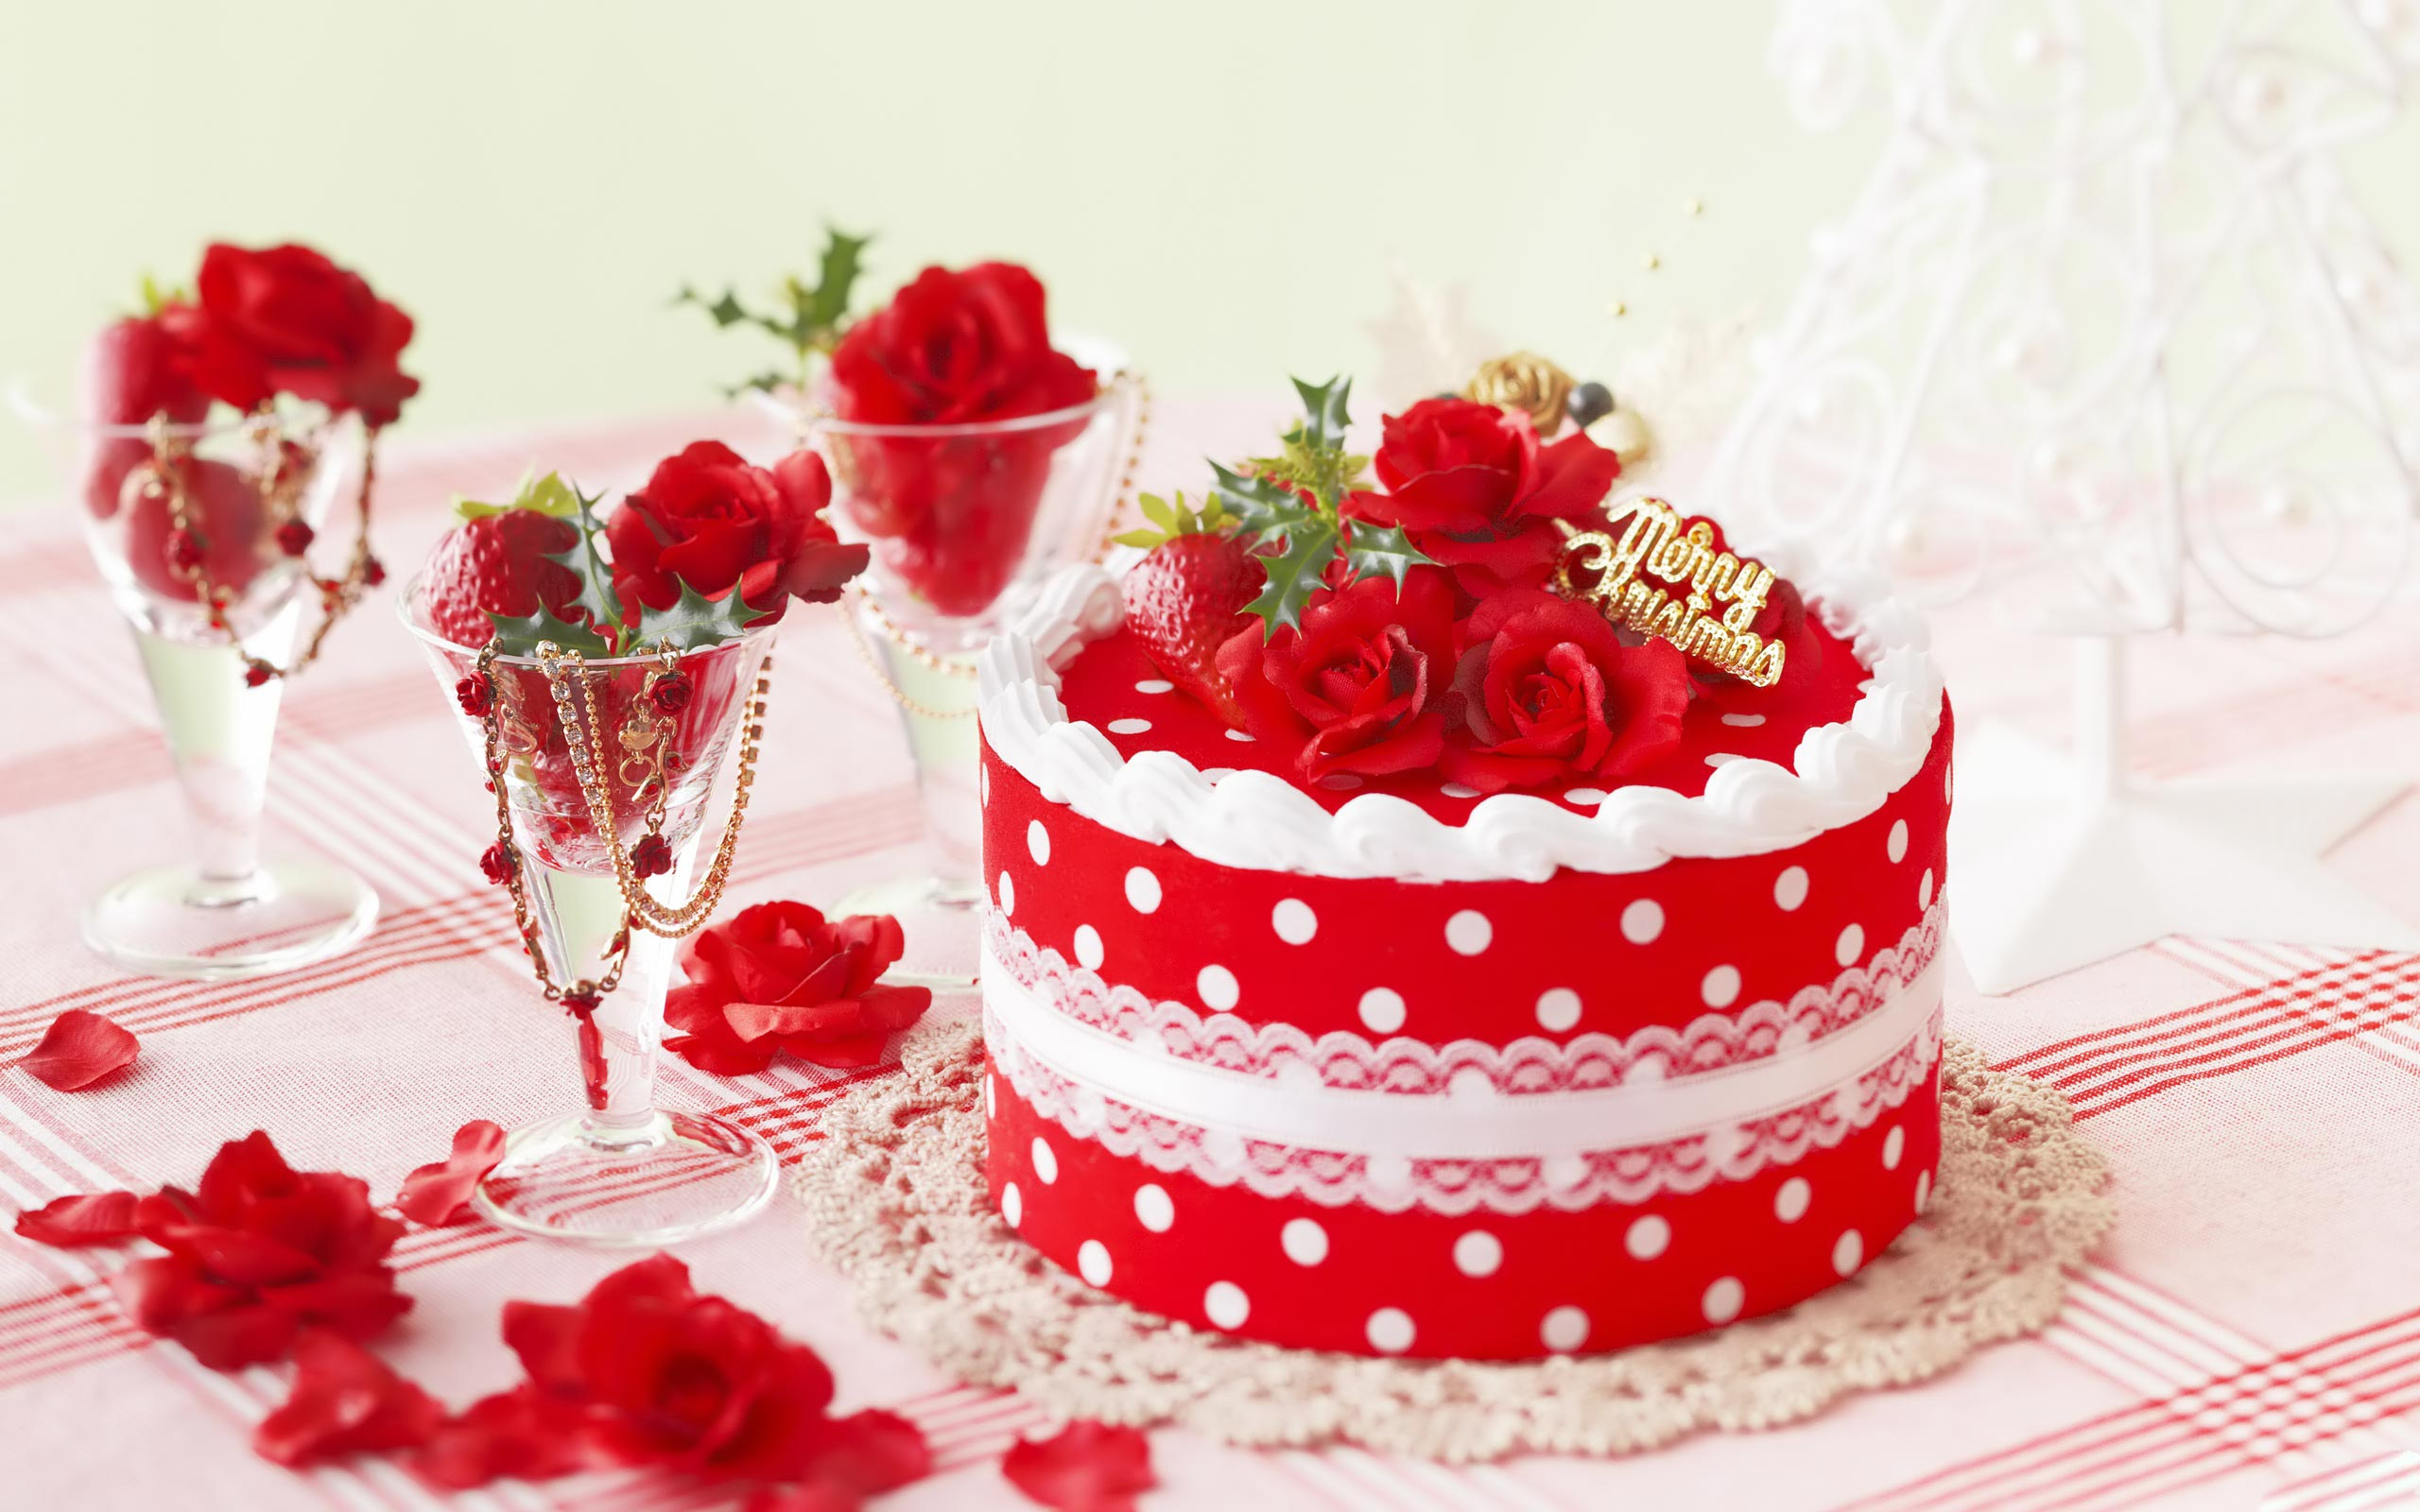 Christmas day cake images